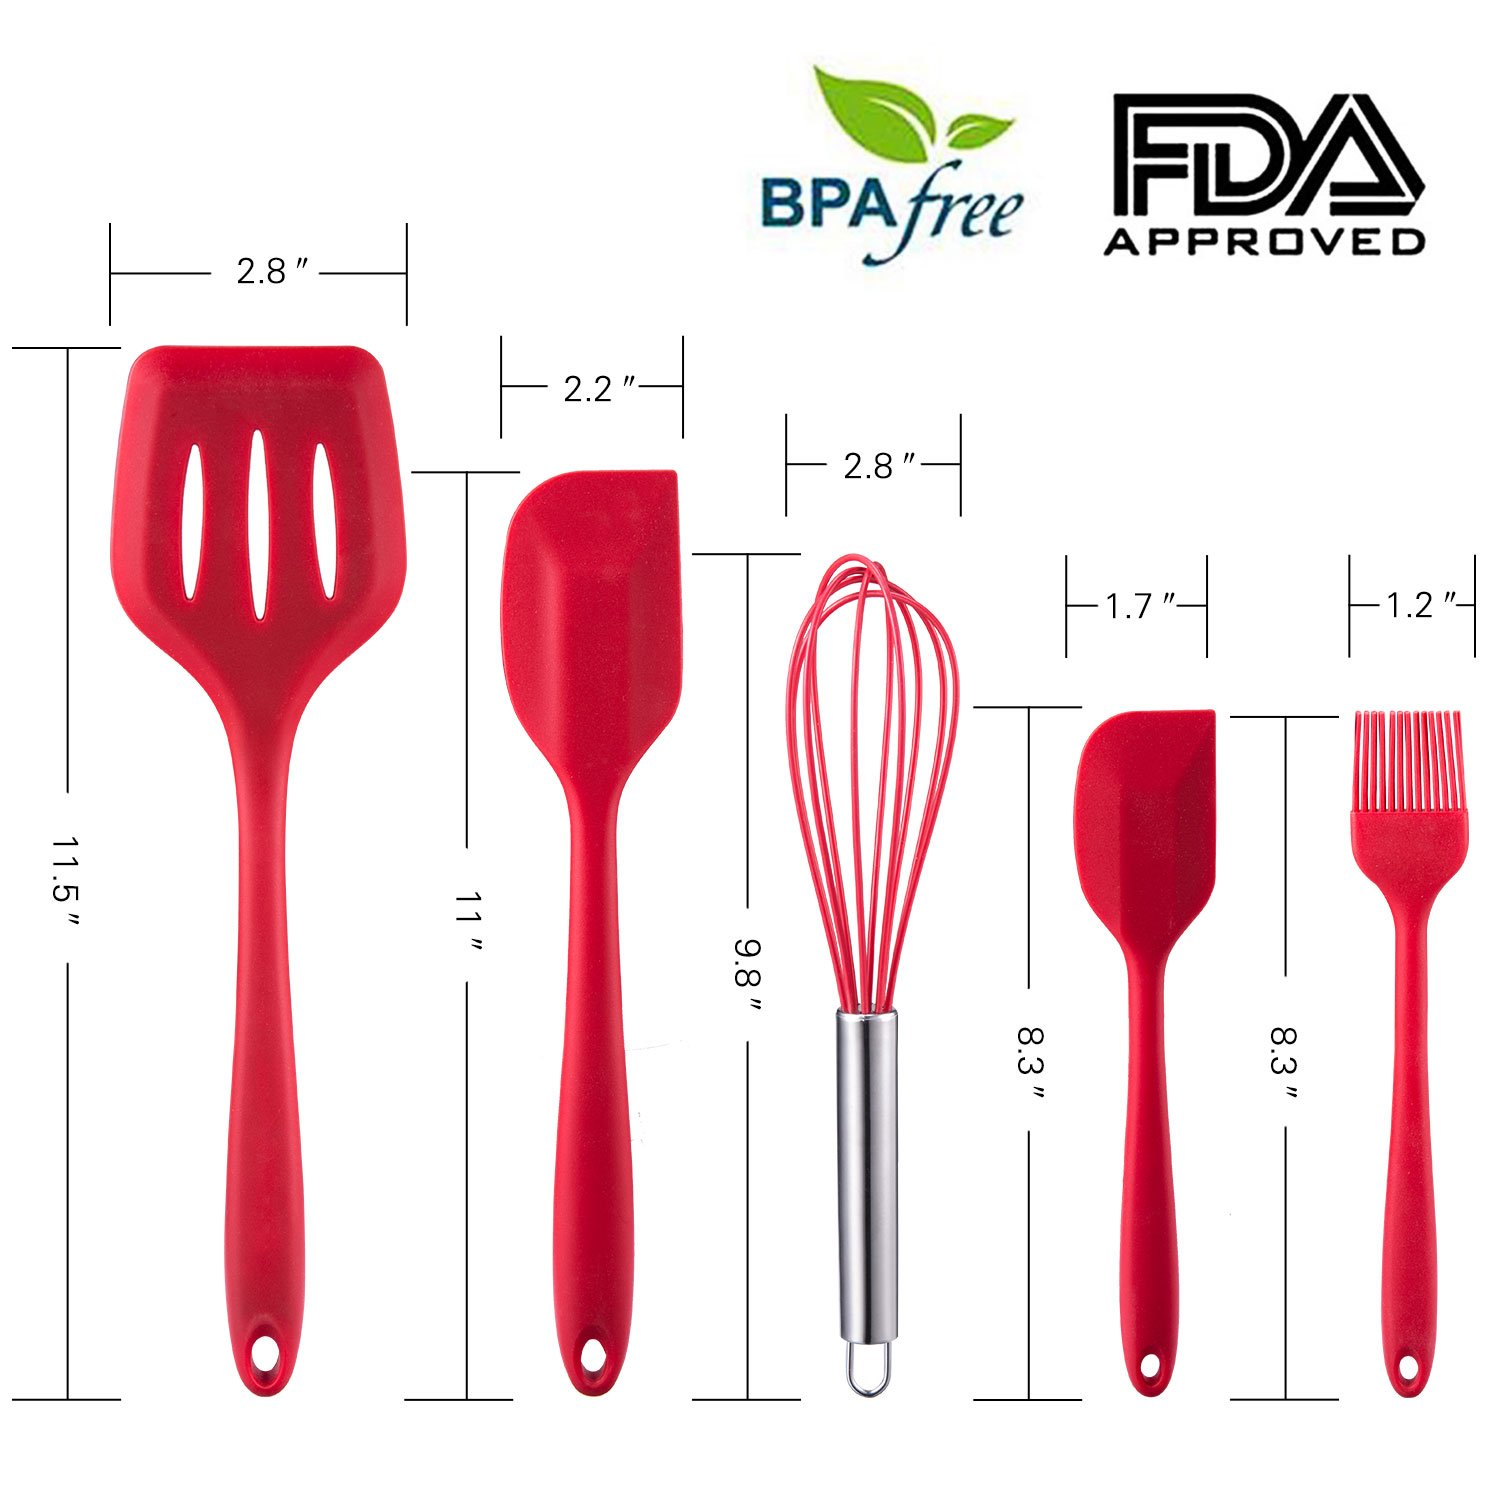 WARMWIND 5-Piece Silicone Kitchen Baking Utensil Set, Non-Stick Cooking Accessories for Baking, Slotted Spatula, Large Spatula, Small Spatula, Basting Brush, Whisk(Red) by WARMWIND (Image #2)